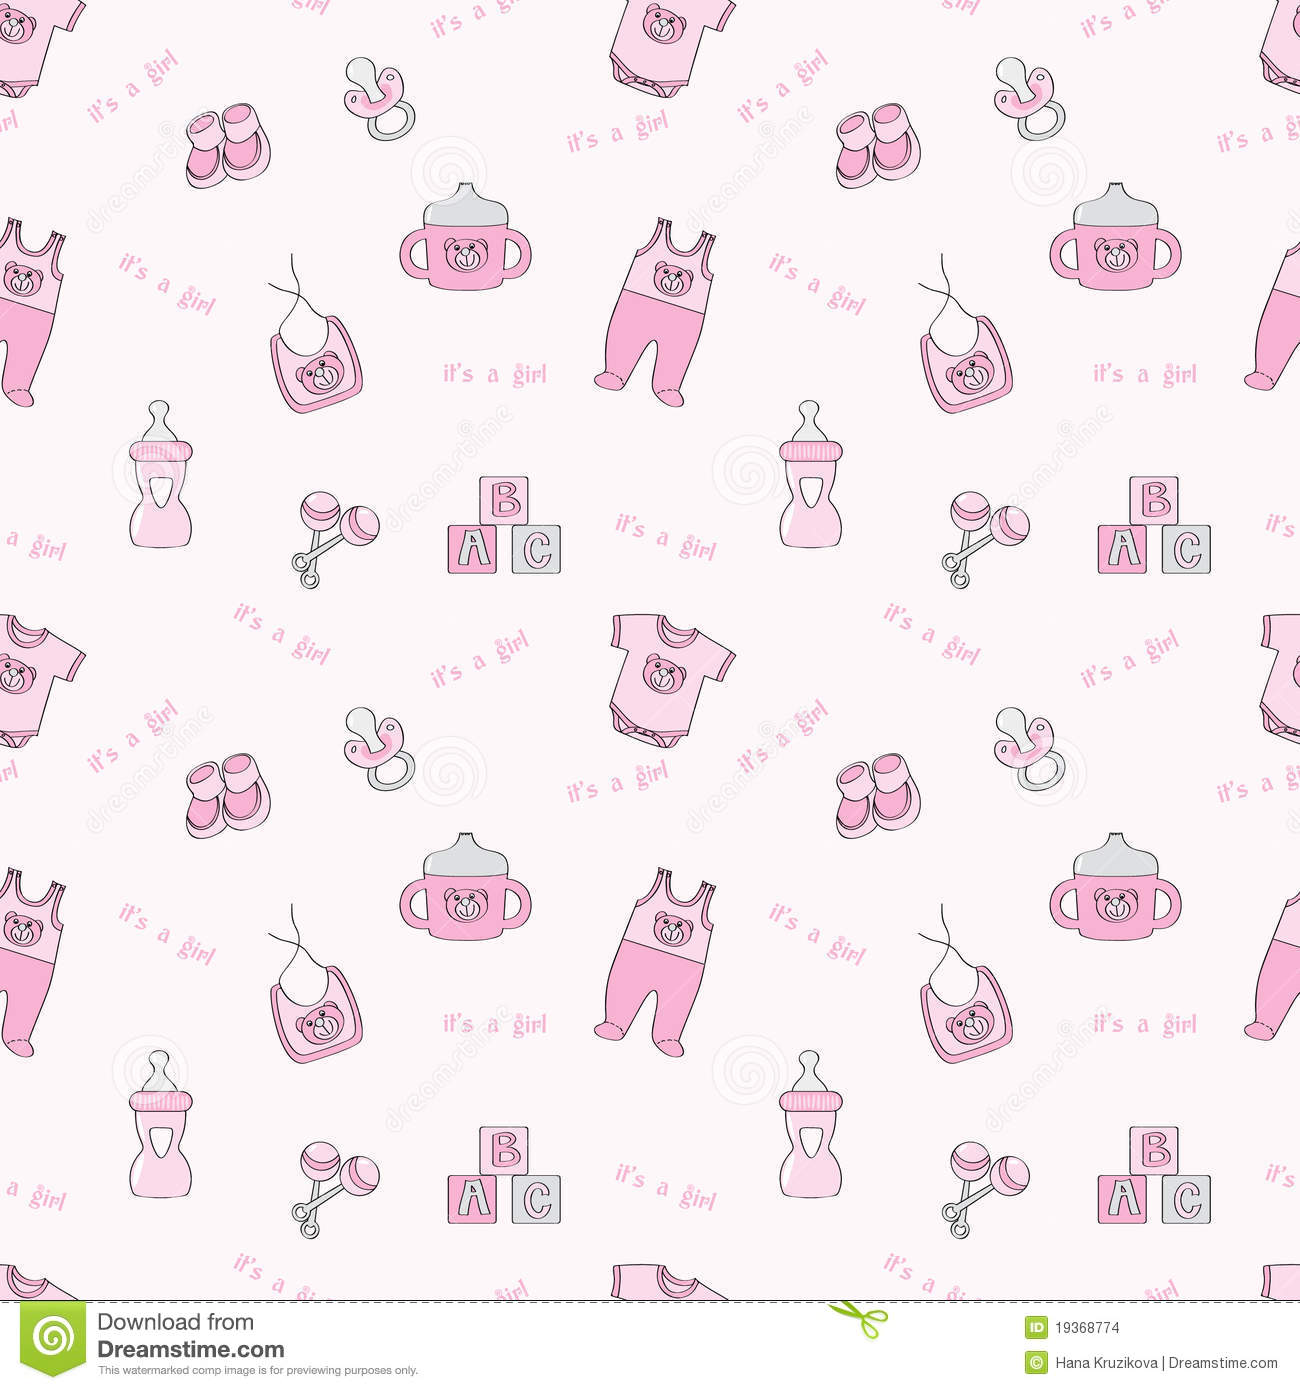 It's A Girl - Pink Seamless Background Stock Images - Image: 19368774